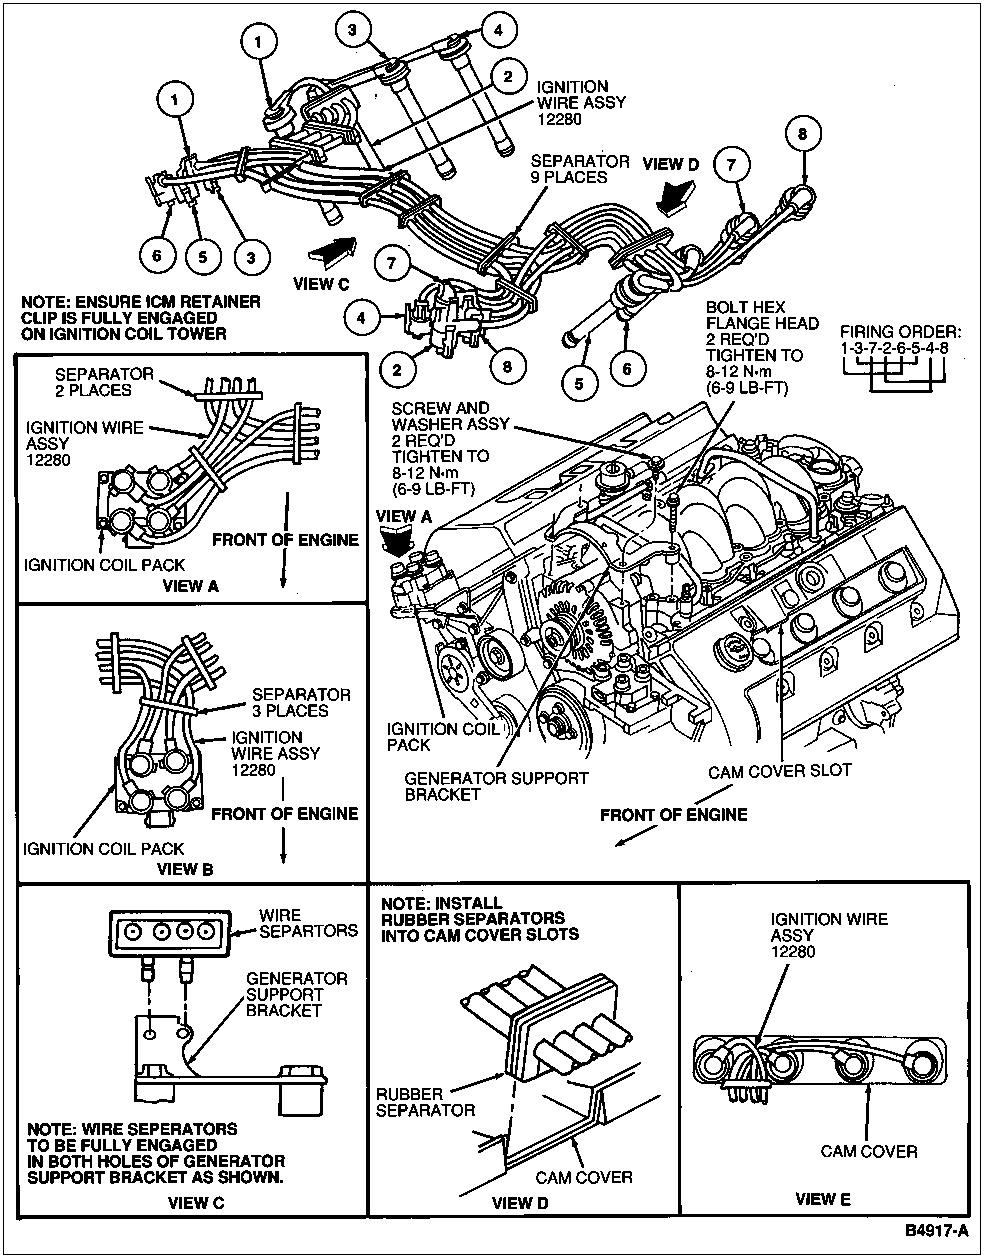 94 Lincoln Mark Viii Need Help Please Lincolns Online Message Forum Wiring Schematic  1999 Lincoln Continental Lincoln Mark Viii Wiring Diagram